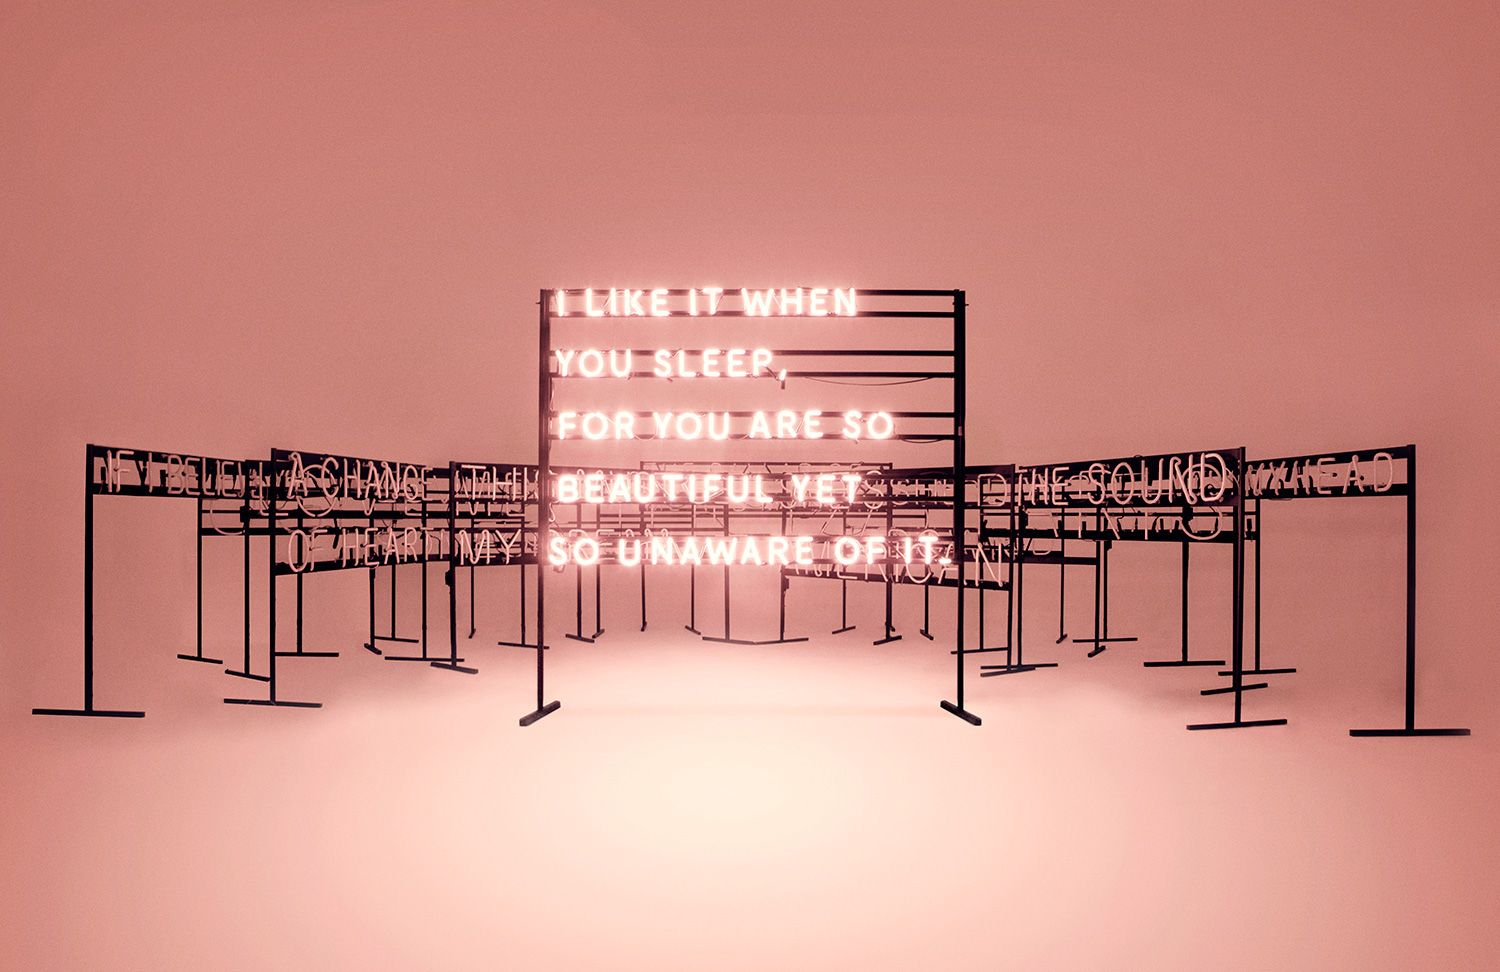 The 1975: Neon Signs on Behance